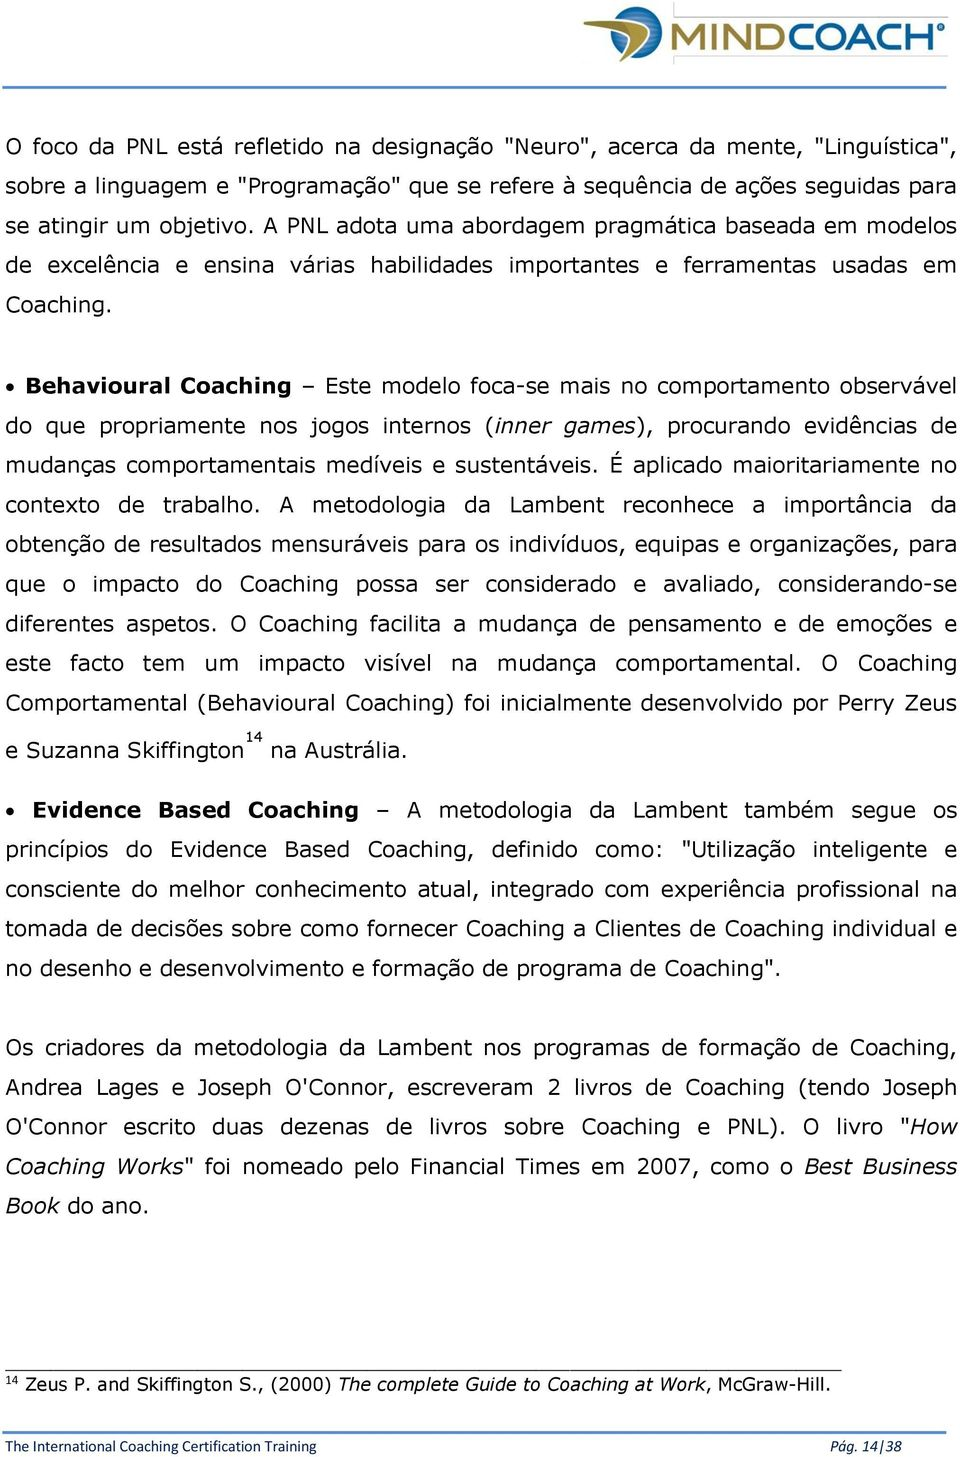 Behavioural Coaching Este modelo foca-se mais no comportamento observável do que propriamente nos jogos internos (inner games), procurando evidências de mudanças comportamentais medíveis e